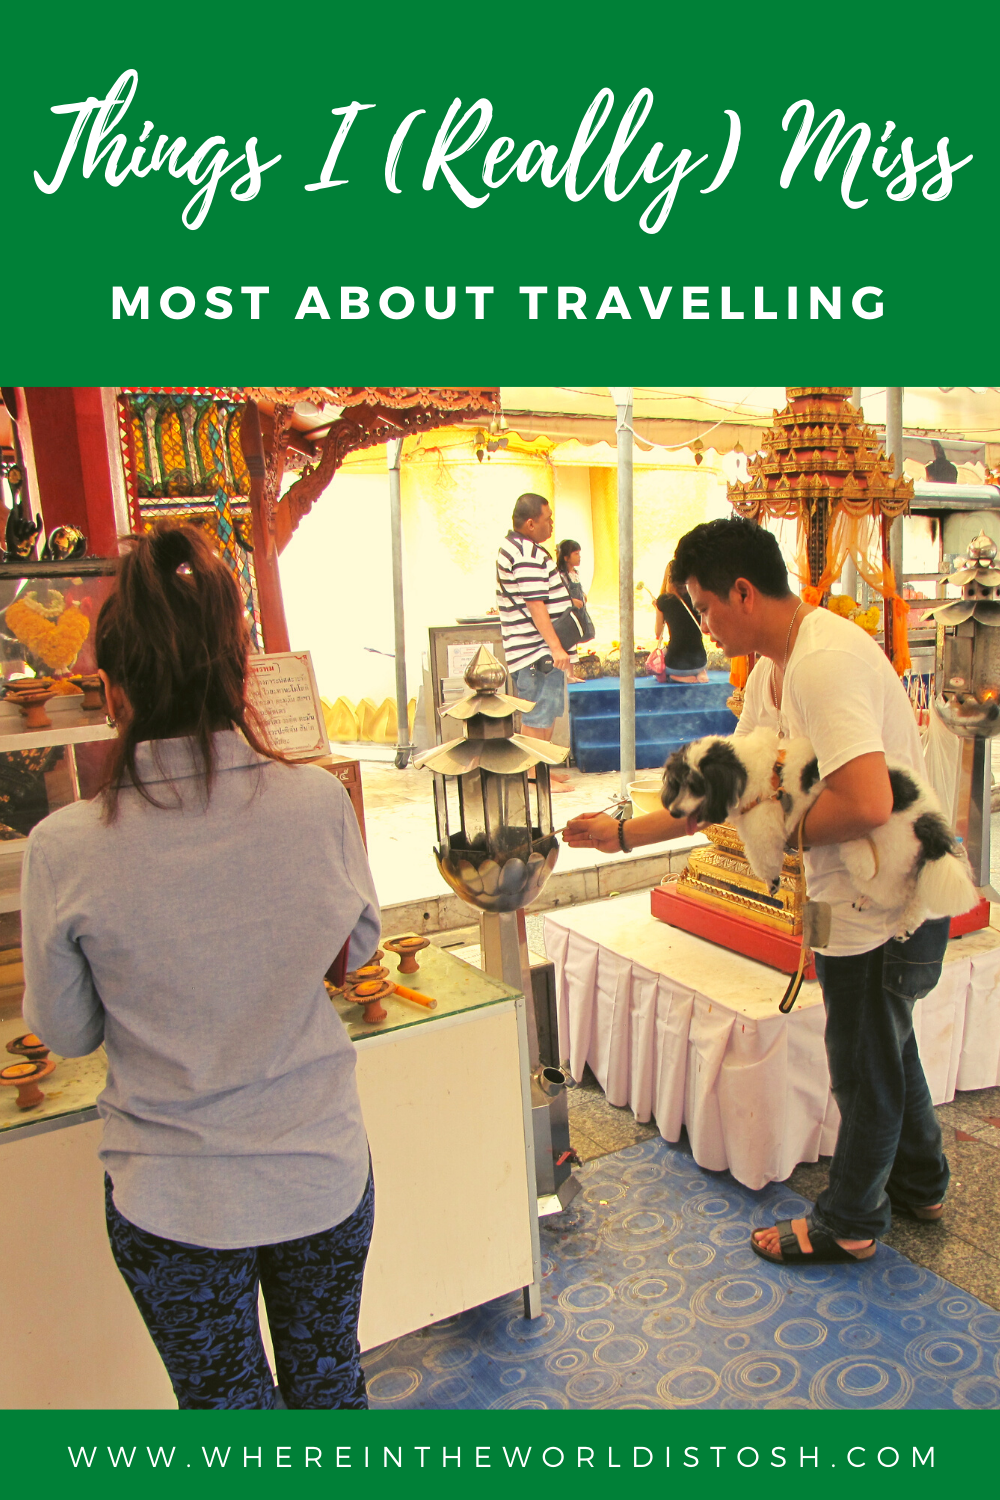 Things I (Really) Miss Most About Travelling